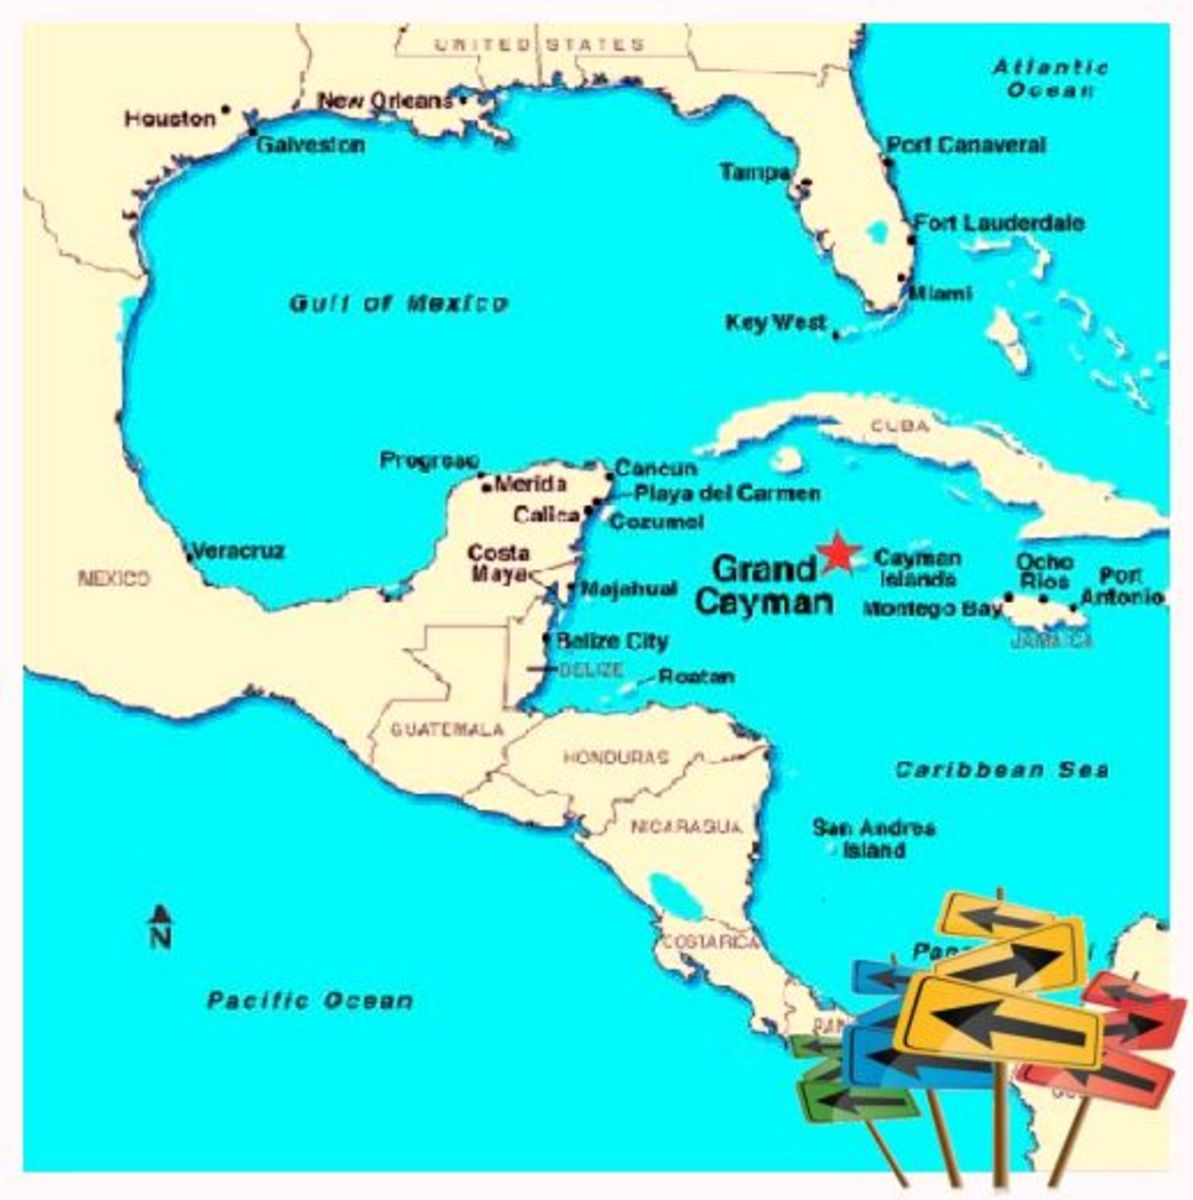 The Cayman Islands are located just south of Cuba.  It is just a short 1 1/4 hours flight from Miami International Airport.